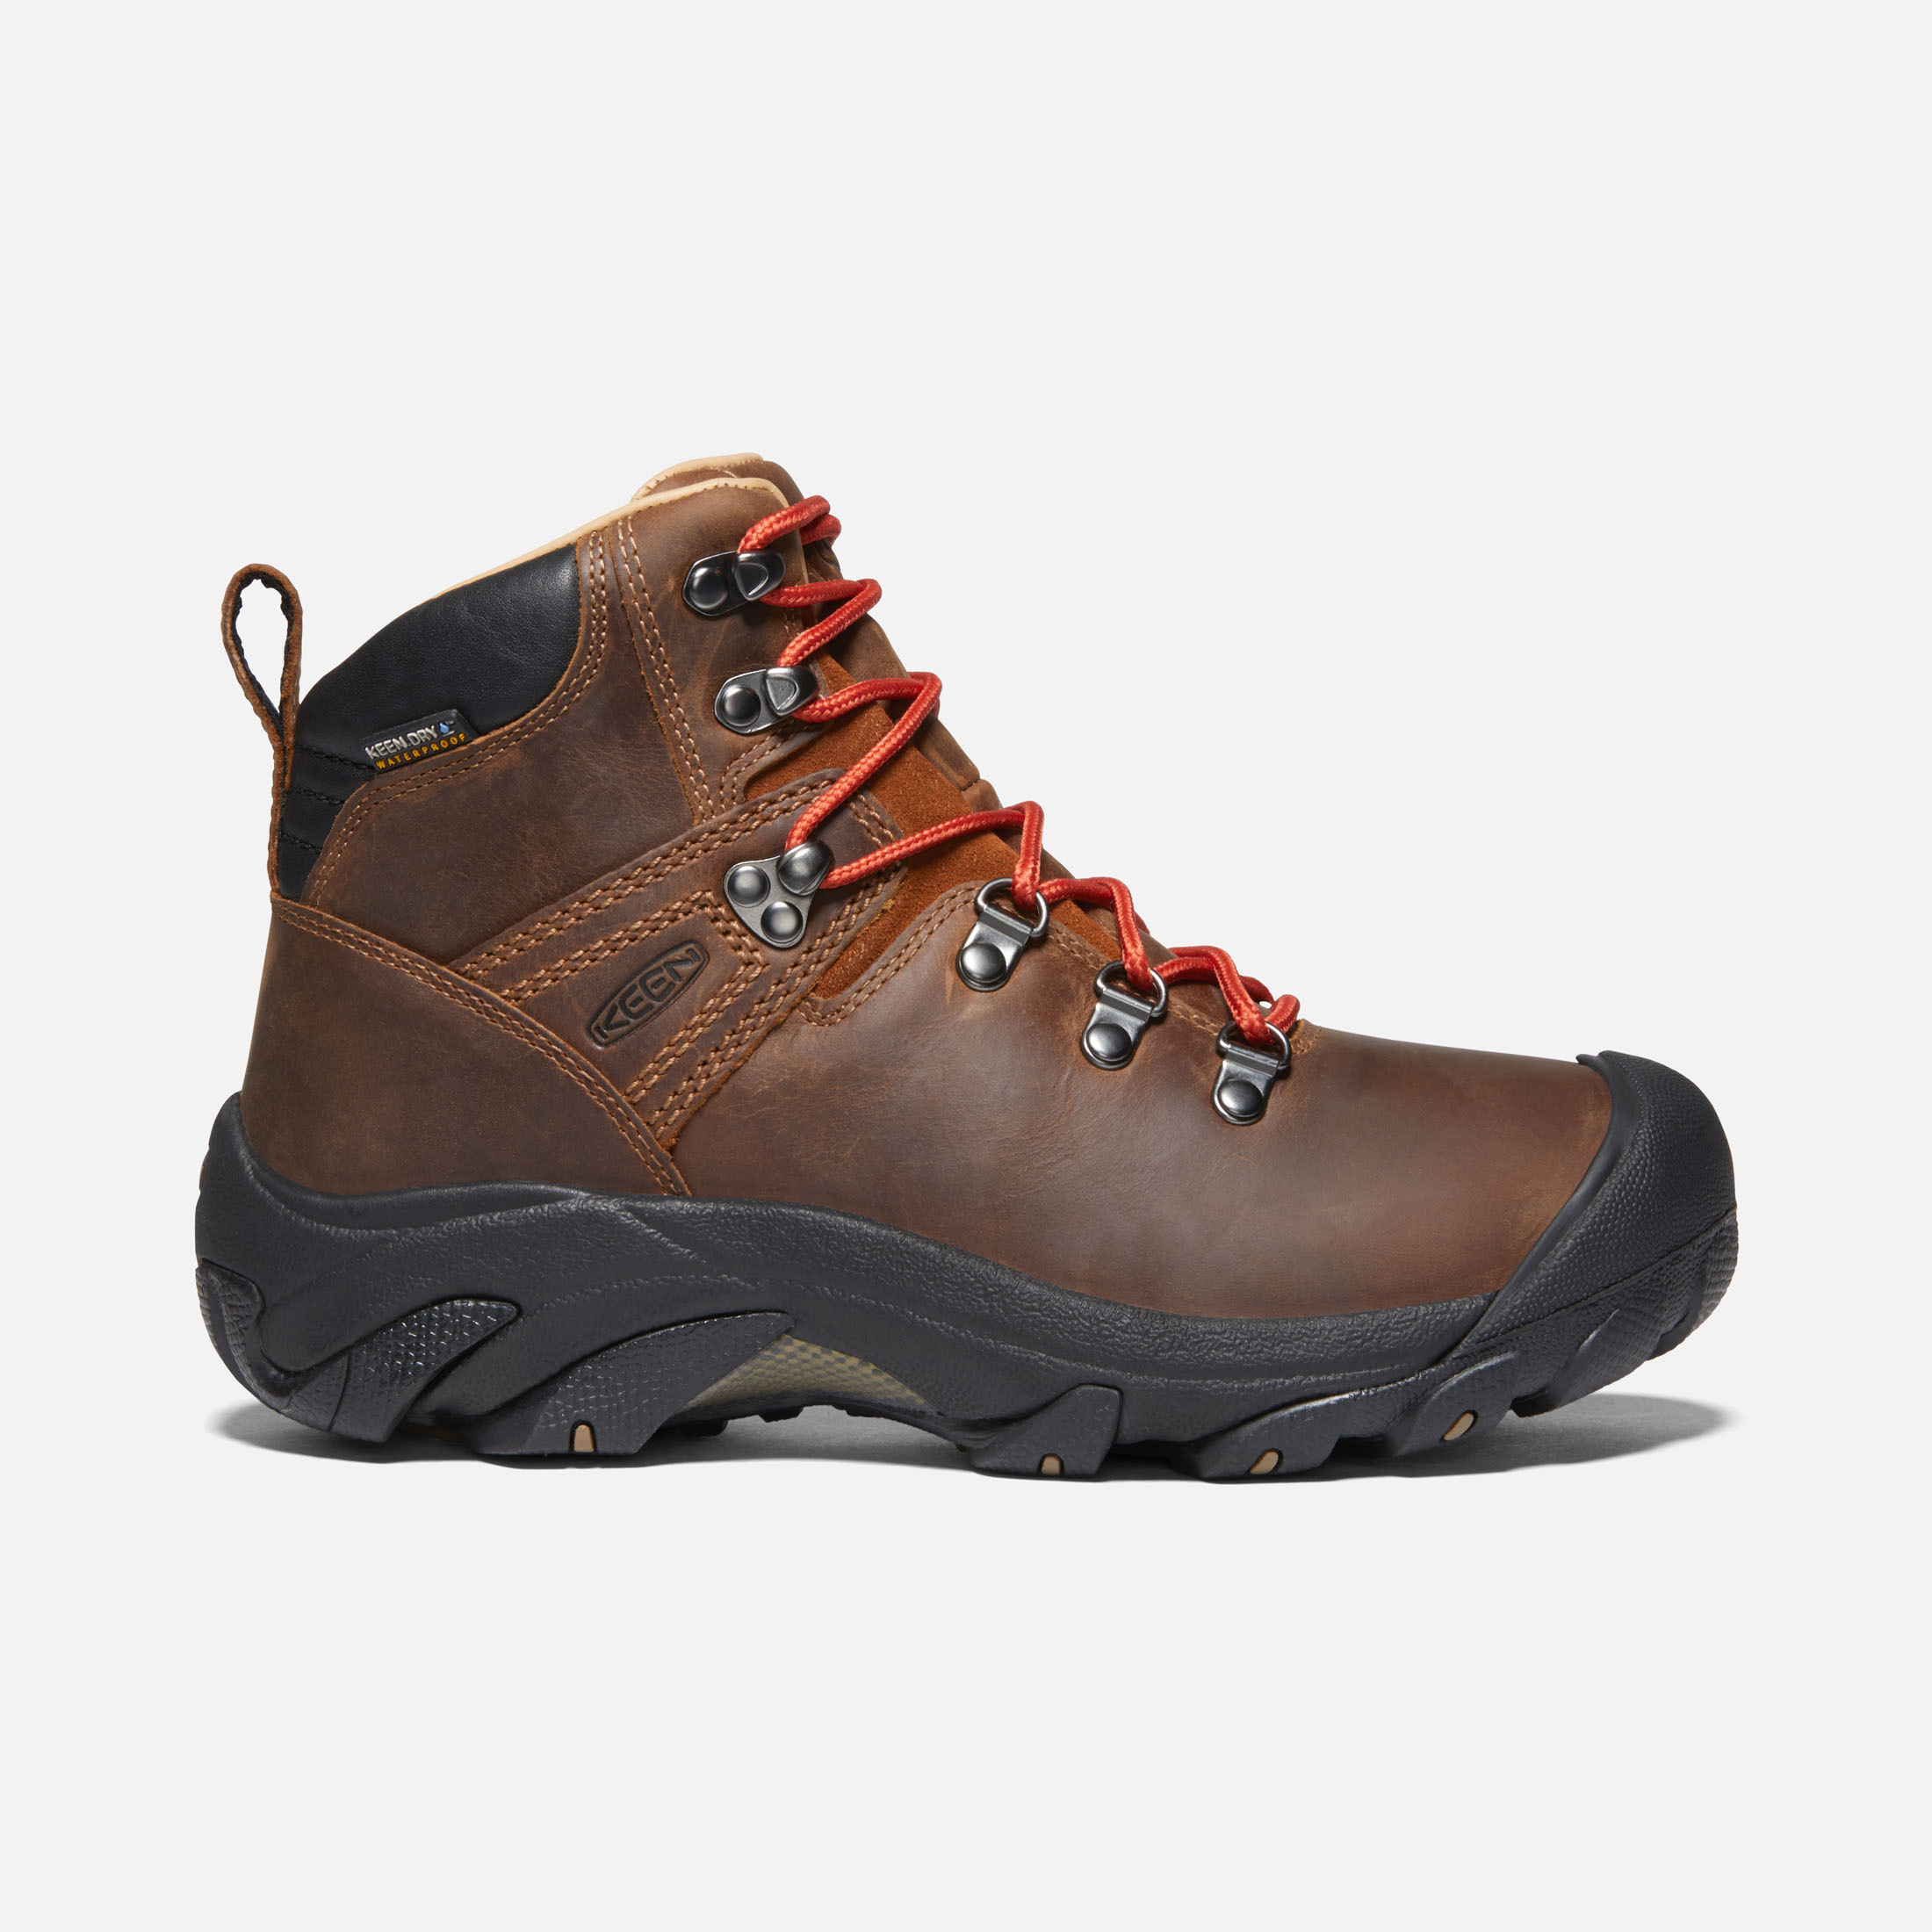 Leather Hiking Boots for Women